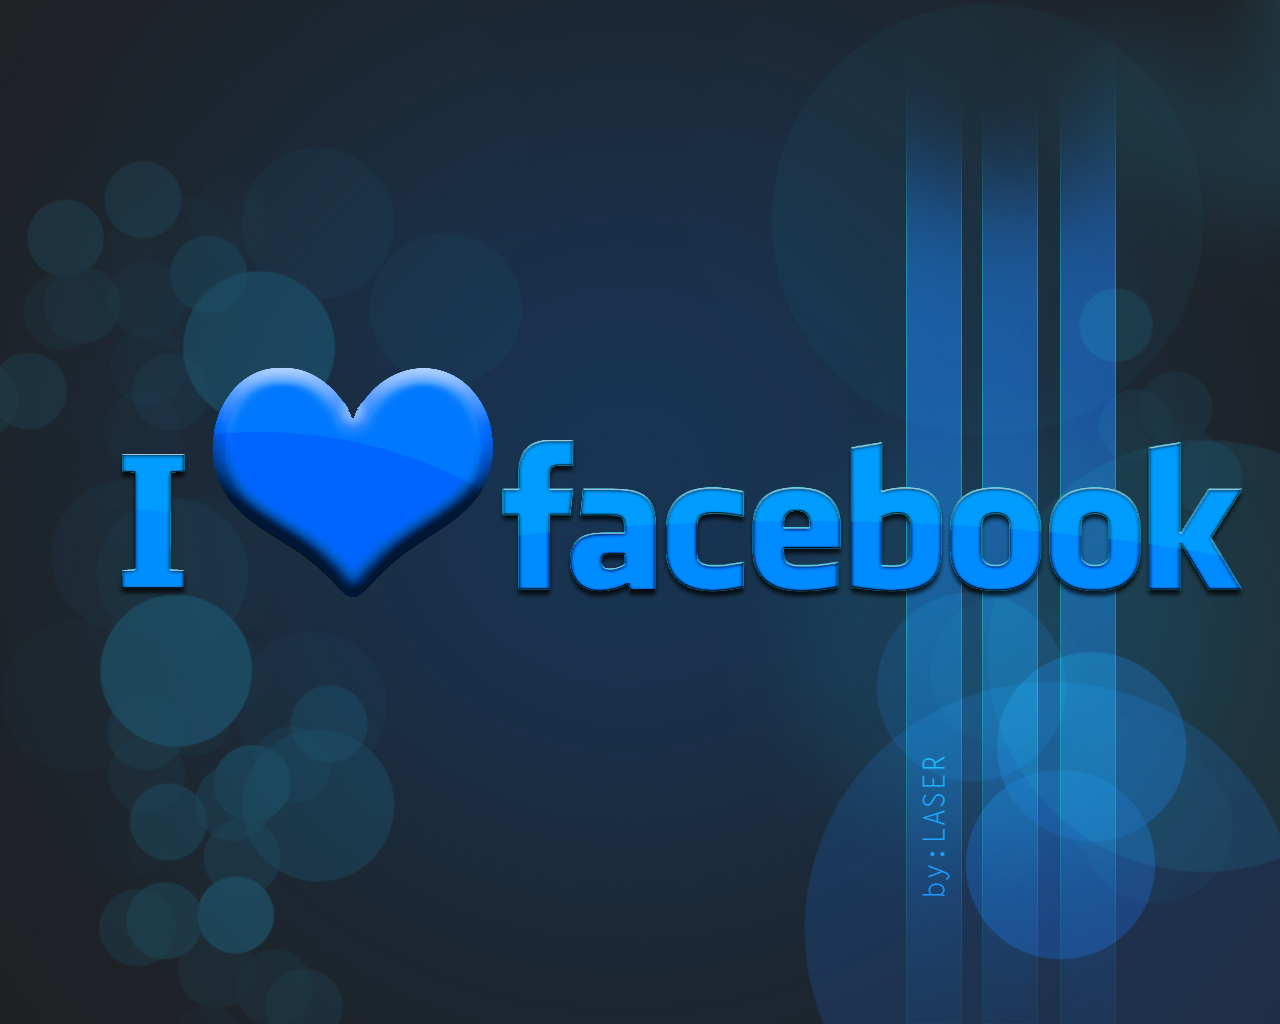 Facebook wallpaper Free HD cool HD Wallpapers